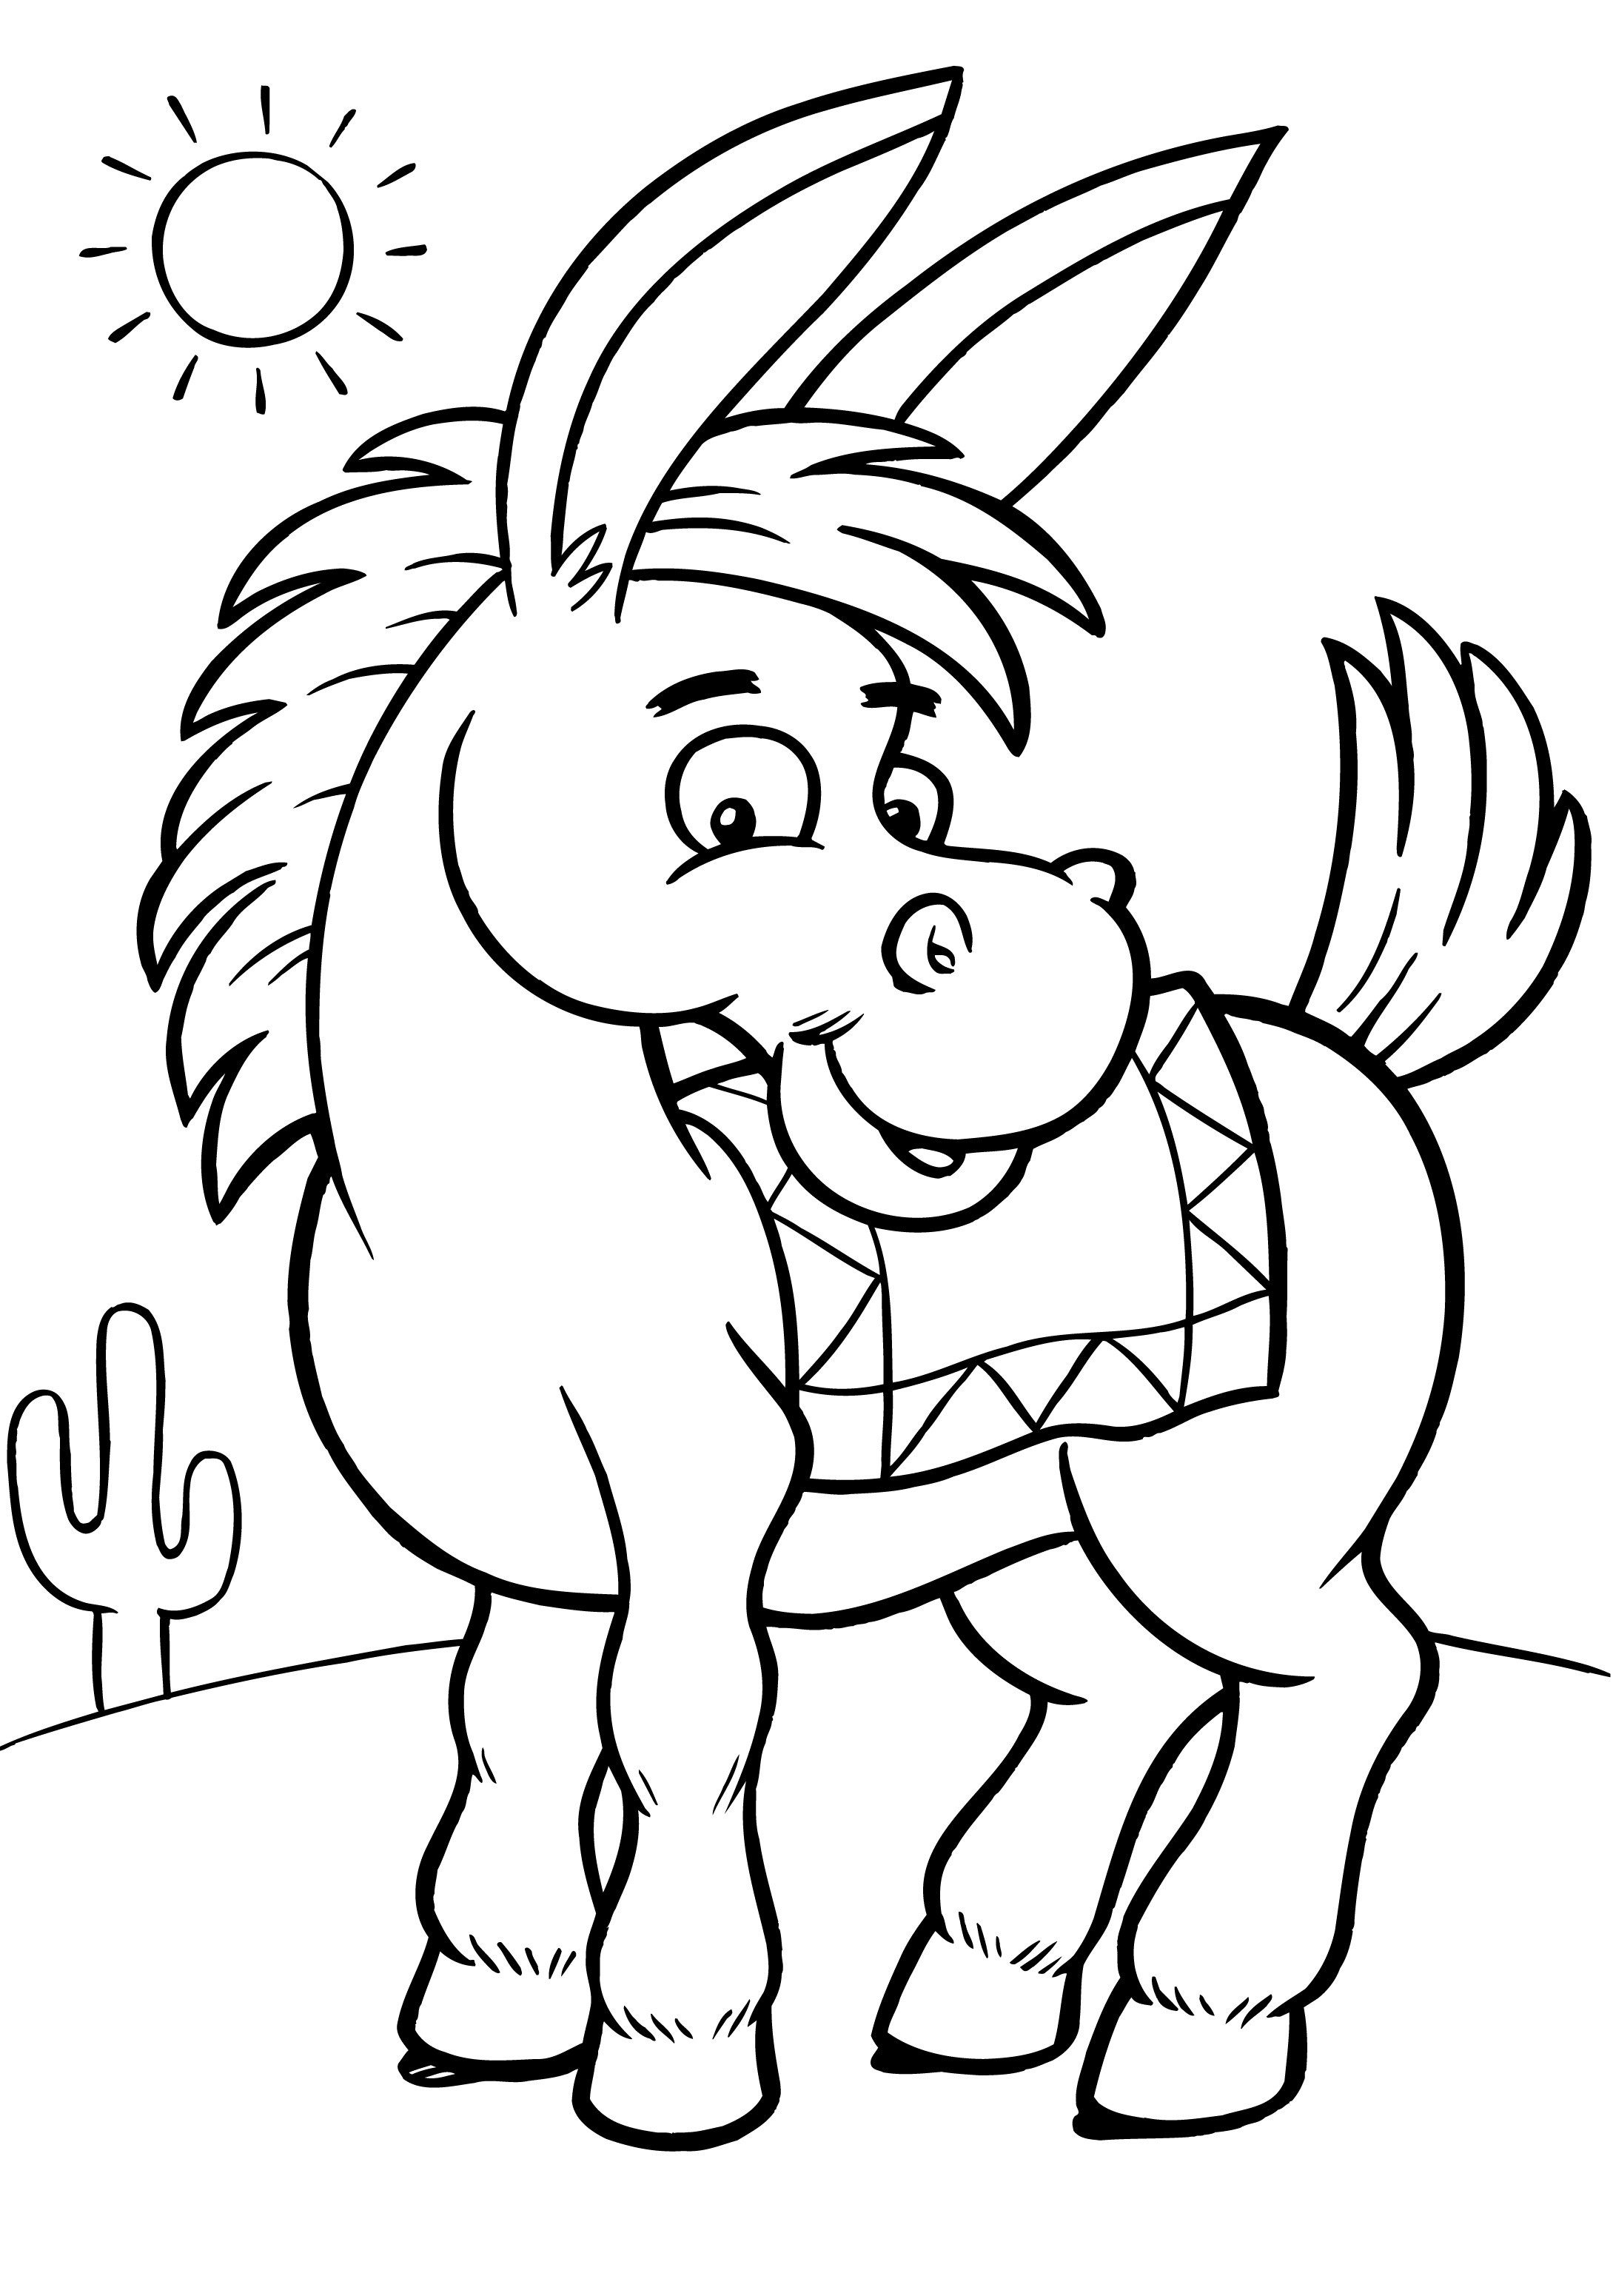 color pages for toddlers pony coloring pages best coloring pages for kids color pages toddlers for